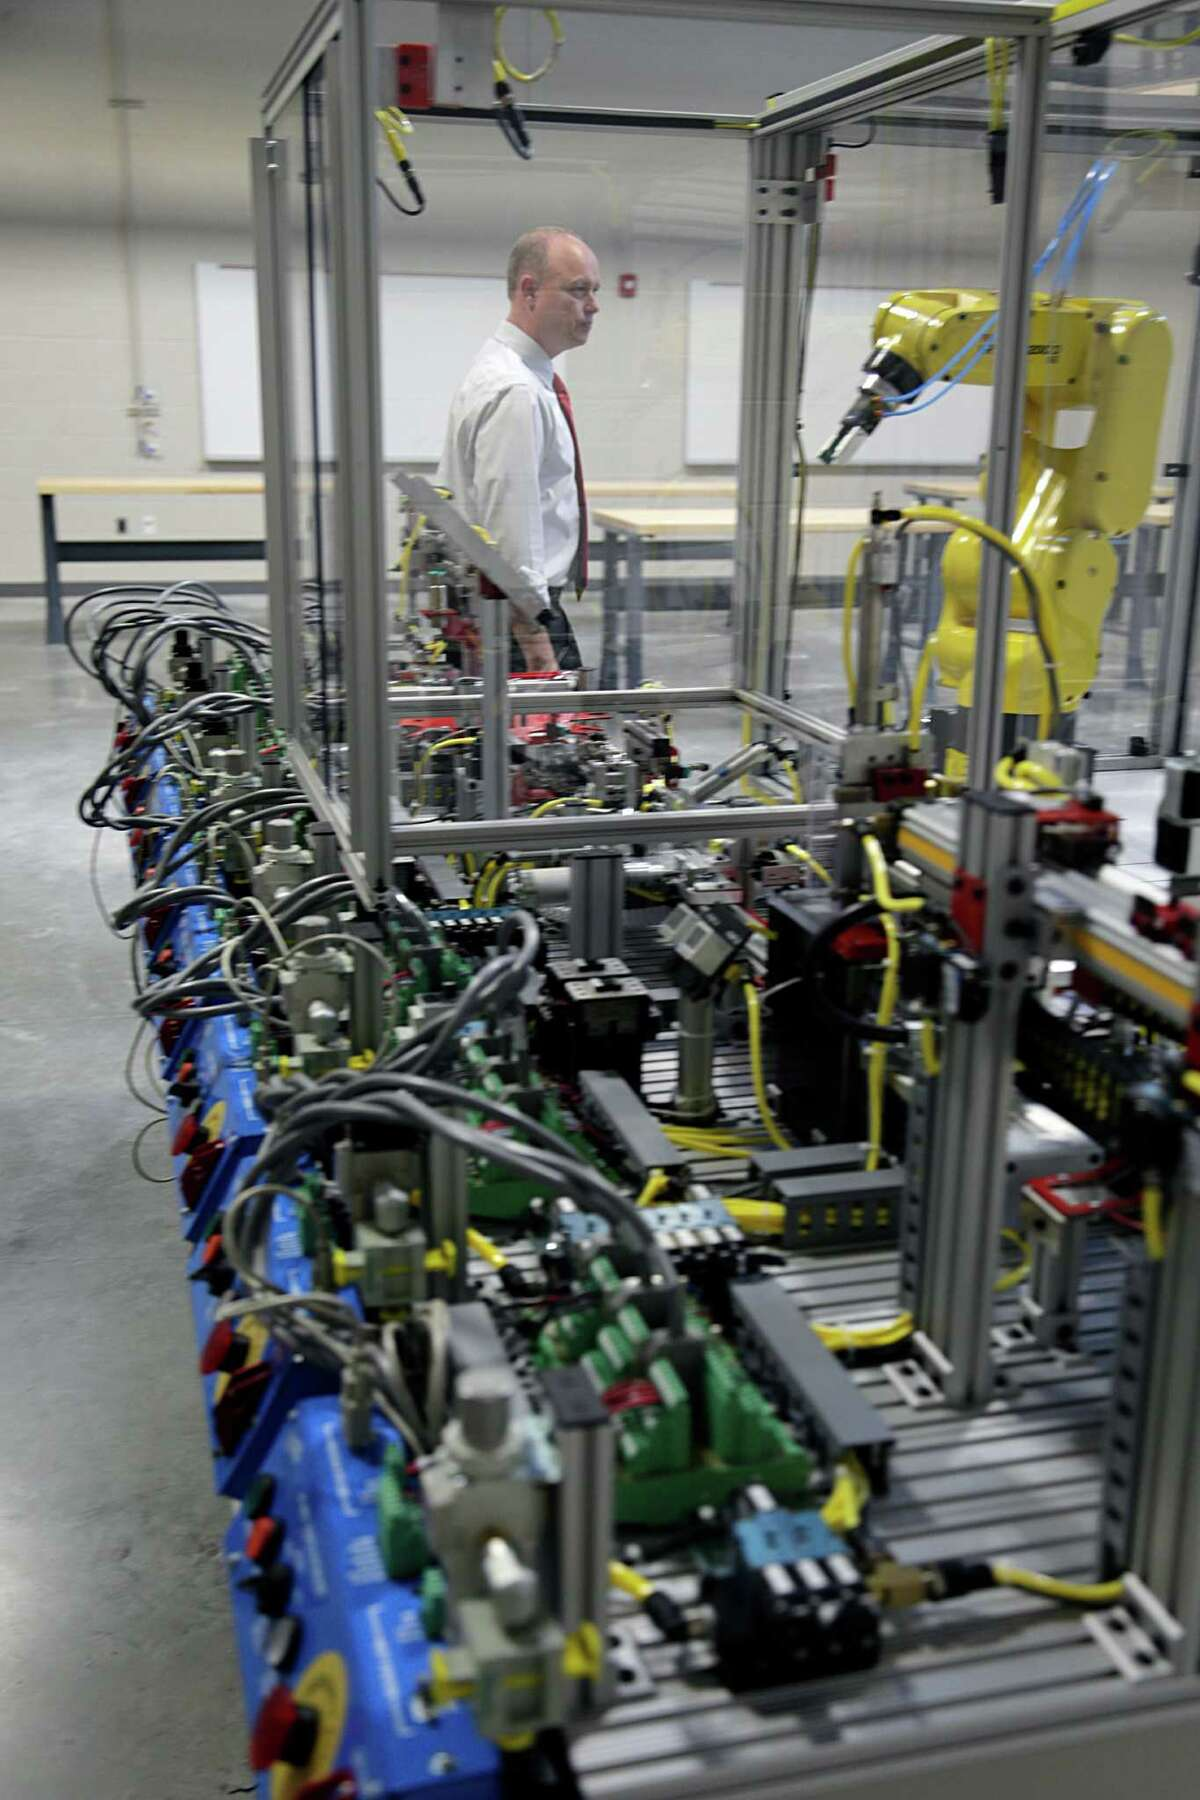 A robotic unit in the Robotics and Mechatronics lab at the Houston Community College's Advanced Manufacturing Center of Excellence Oct. 4, 2016, in Stafford. ( James Nielsen / Houston Chronicle )